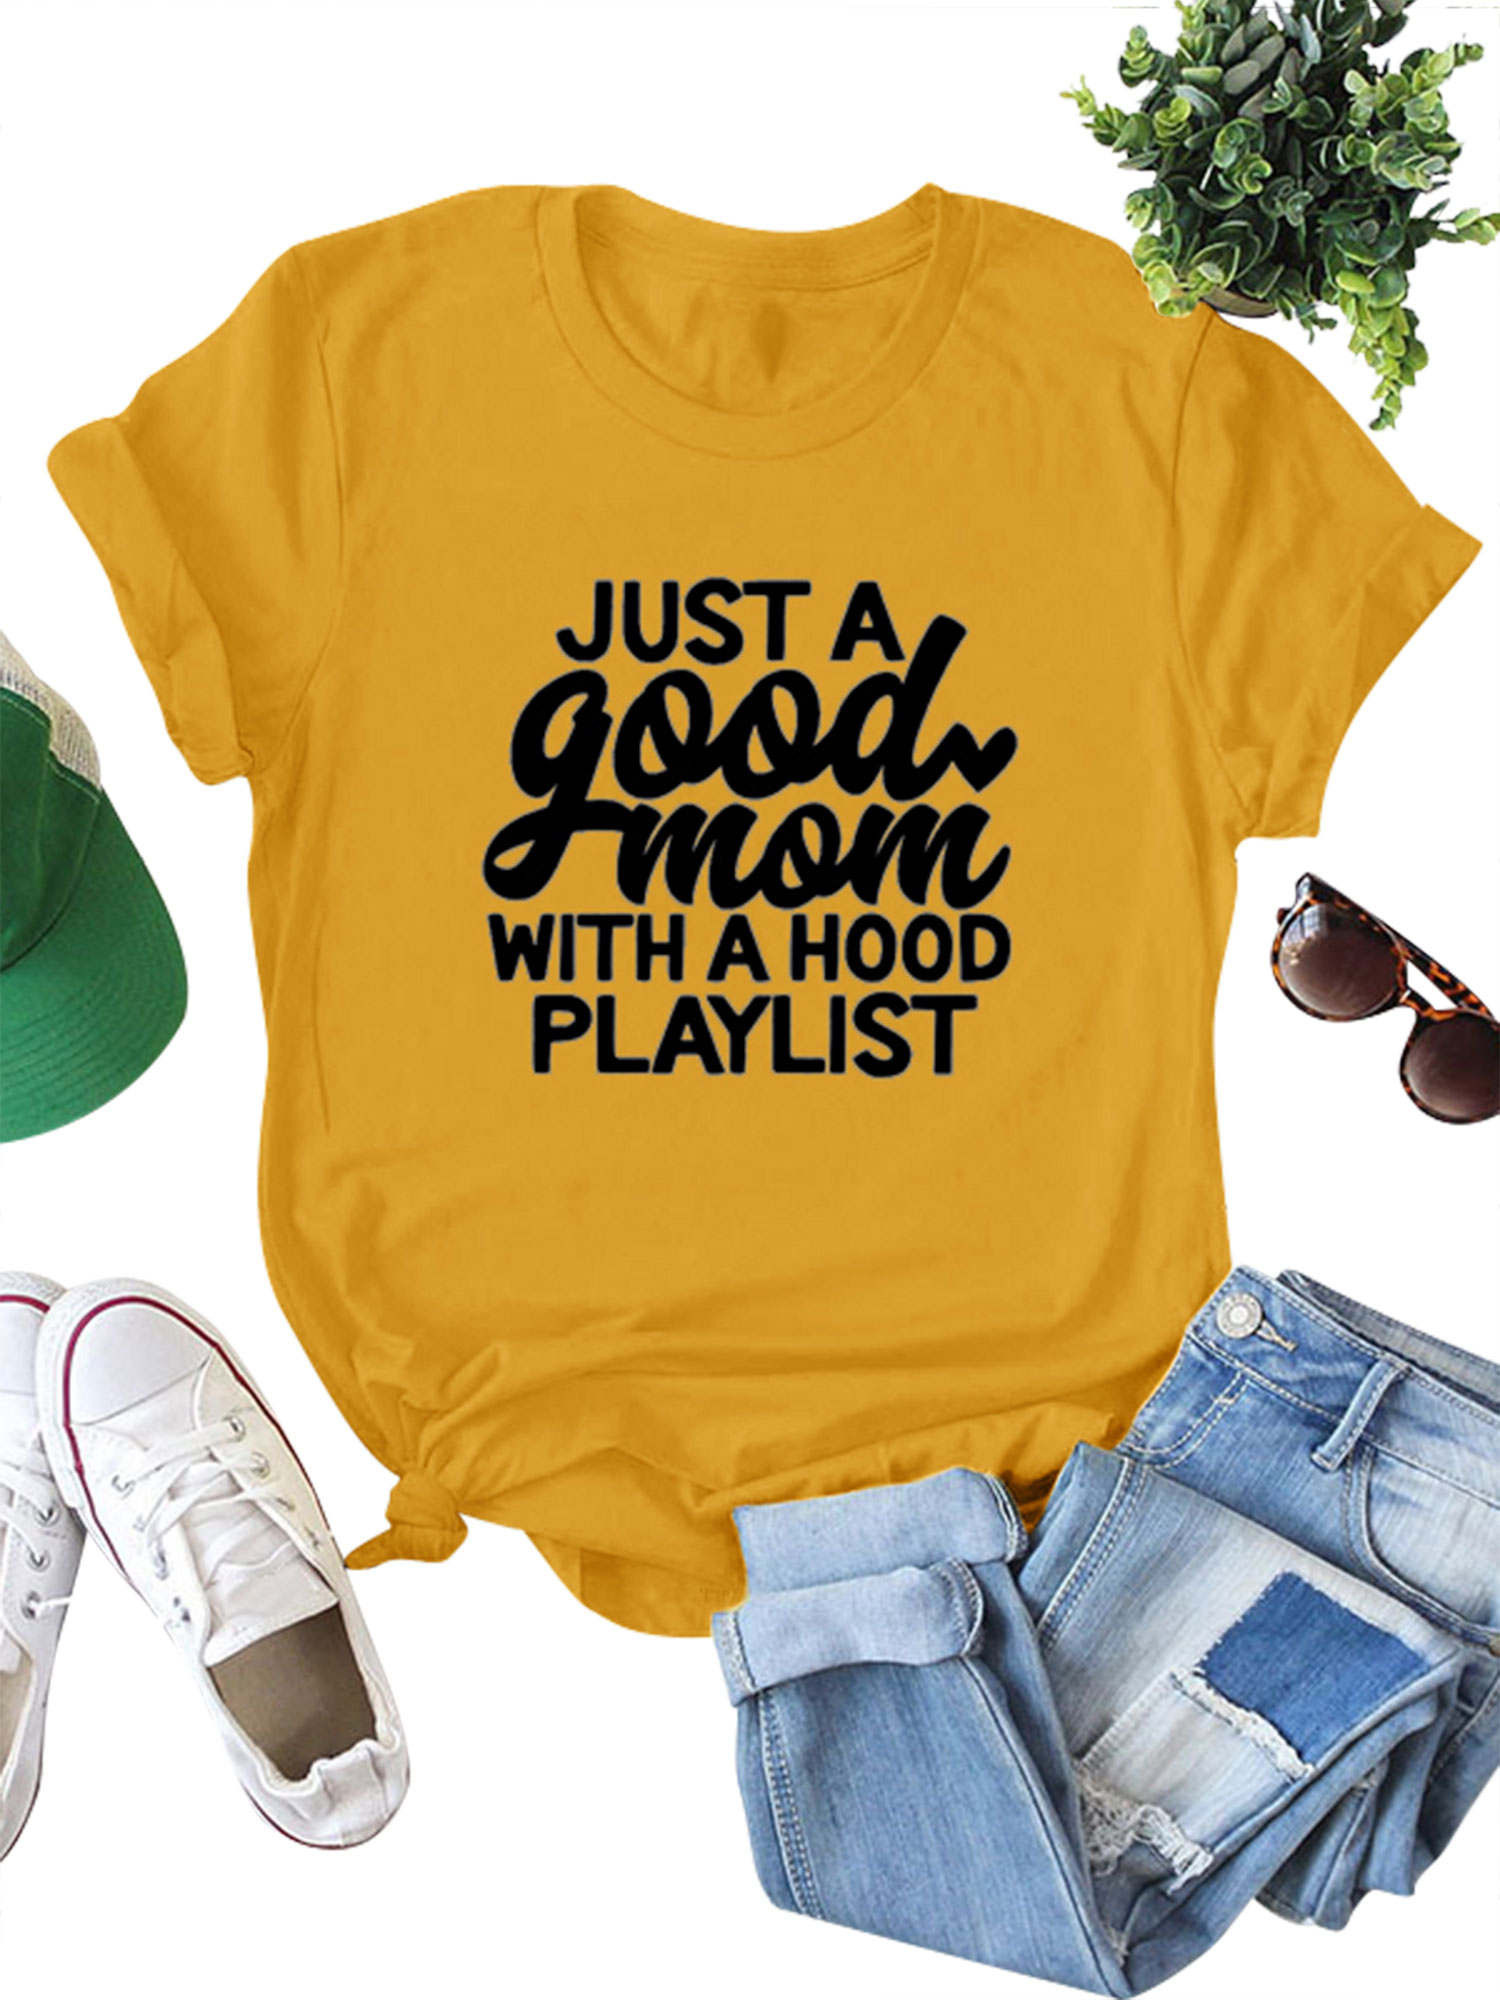 Garage Clothing Playlist Lefashion Women Just A Good Mom With A Hood Playlist Letter Print T Shirt Solid Color Casual Tops Tee